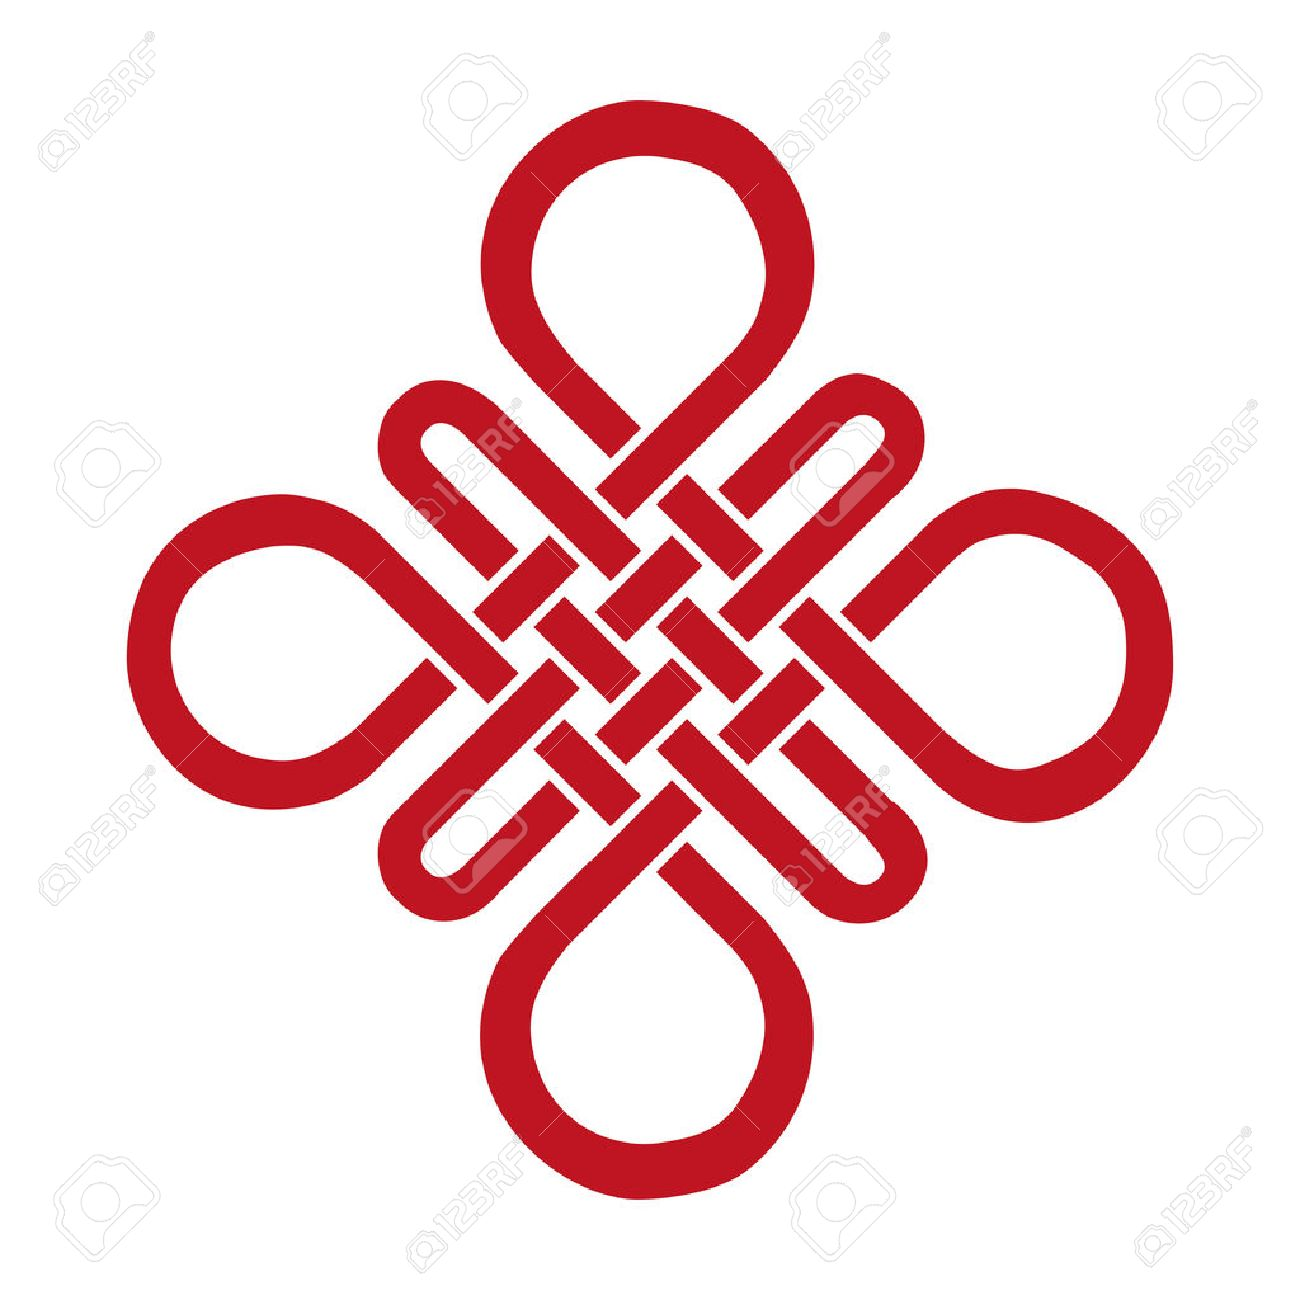 Endless Auspicious knot . China,Tibet, Eternal , Buddhism and Spirituality icon,symbol.Vector red sign.Feng Shui traditional element,geometric ornament. - 53460594